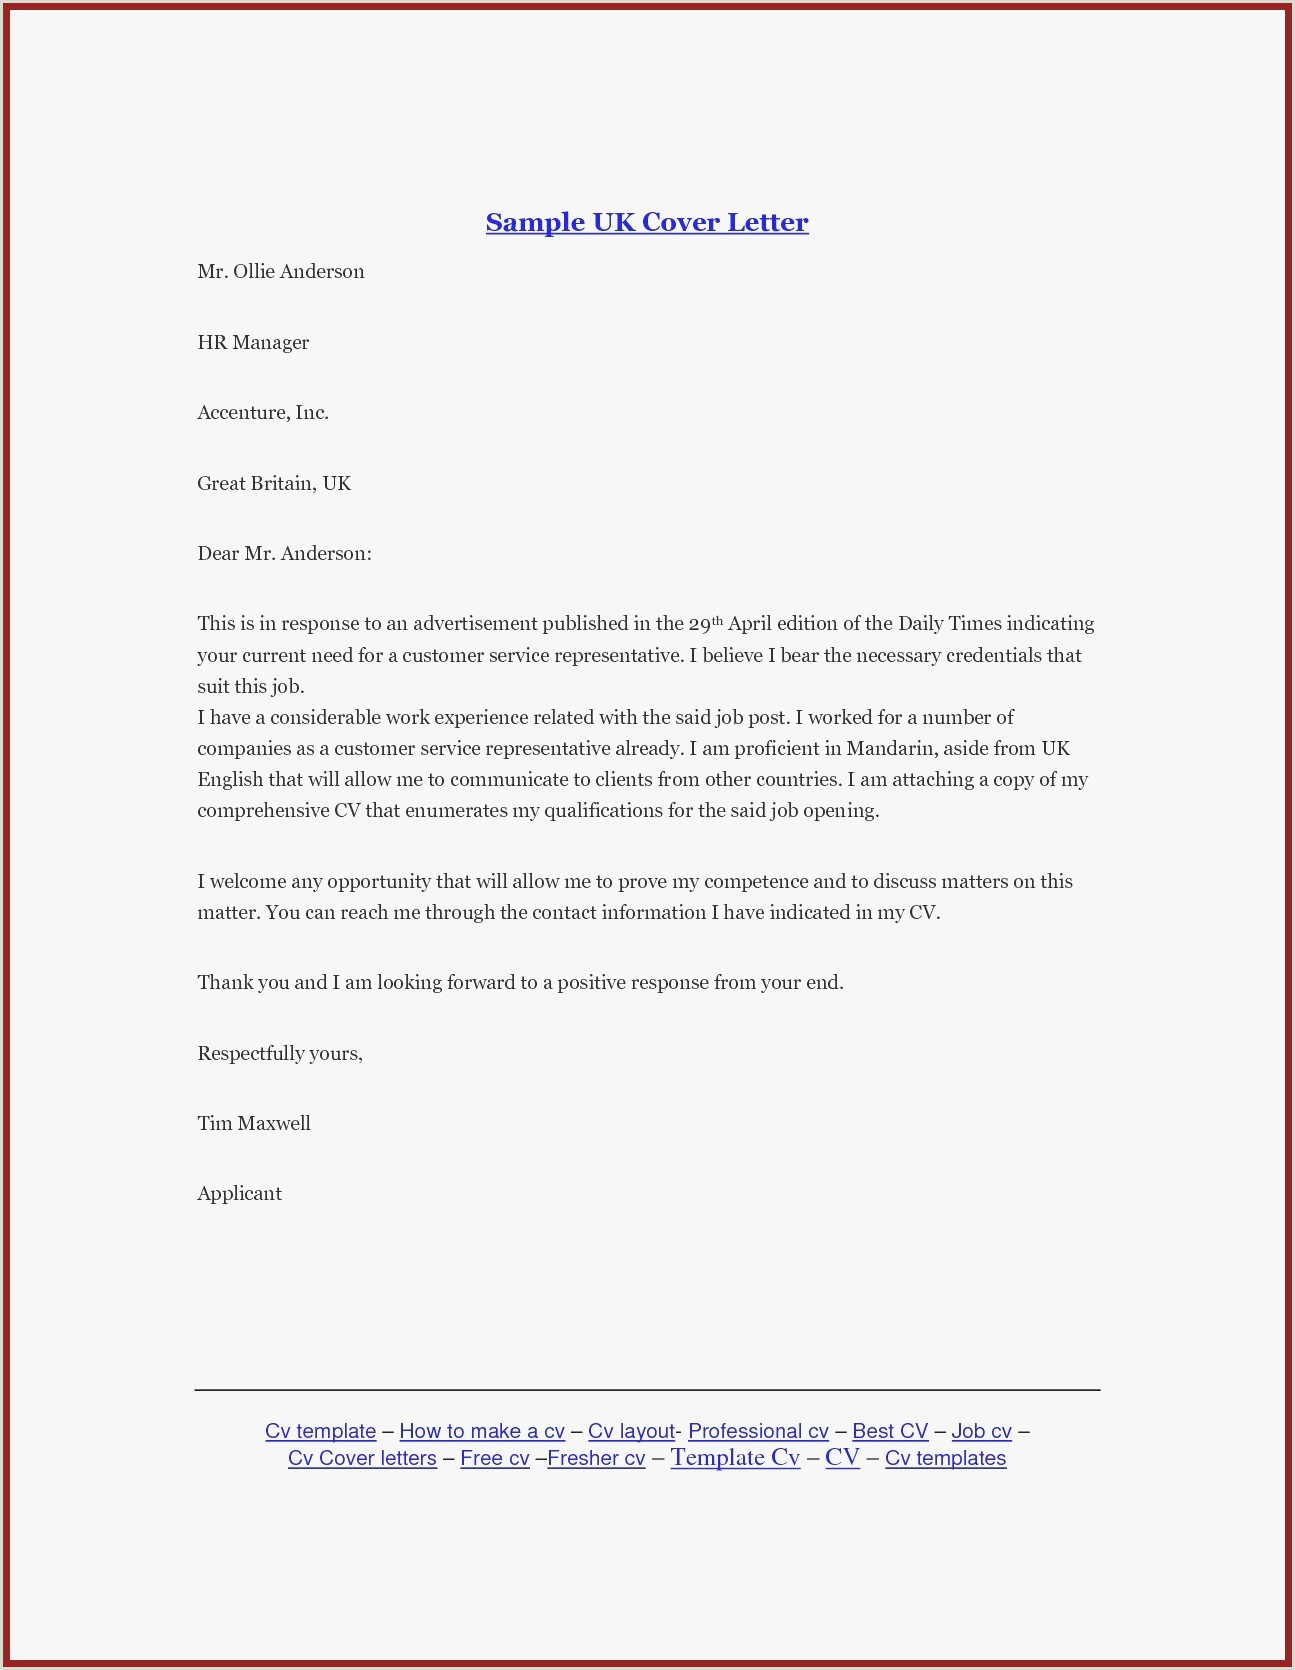 Professional Cv format with Cover Letter Unique Employment Cover Letter Templates